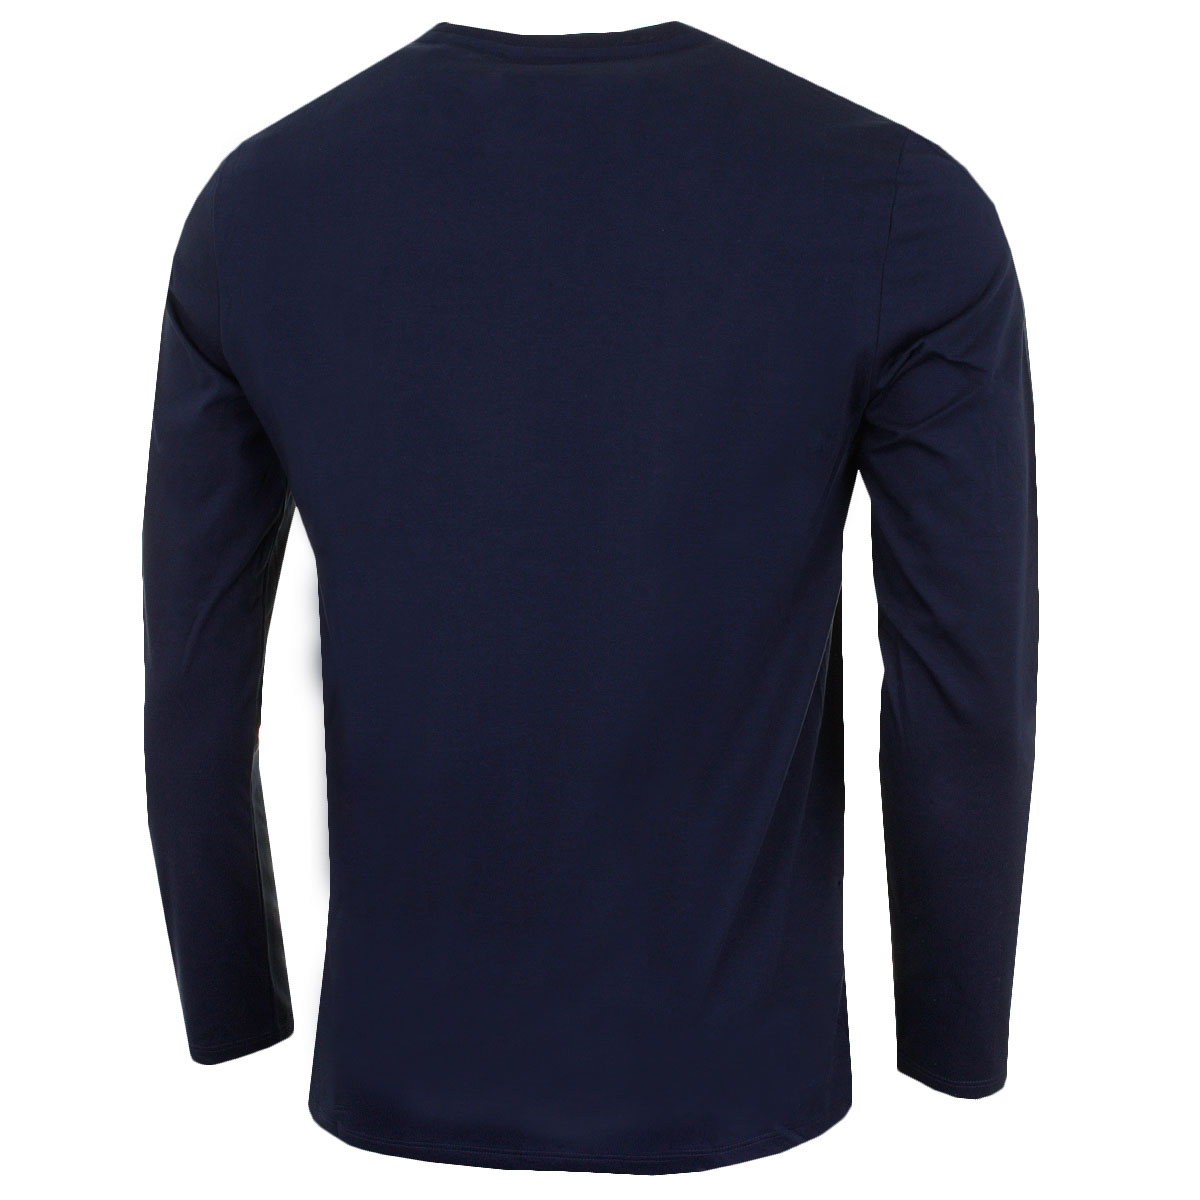 Lacoste-Mens-2019-LS-Crew-Neck-Cotton-T-Shirt-TH6712-Long-Sleeve-Tee-27-OFF-RRP thumbnail 9